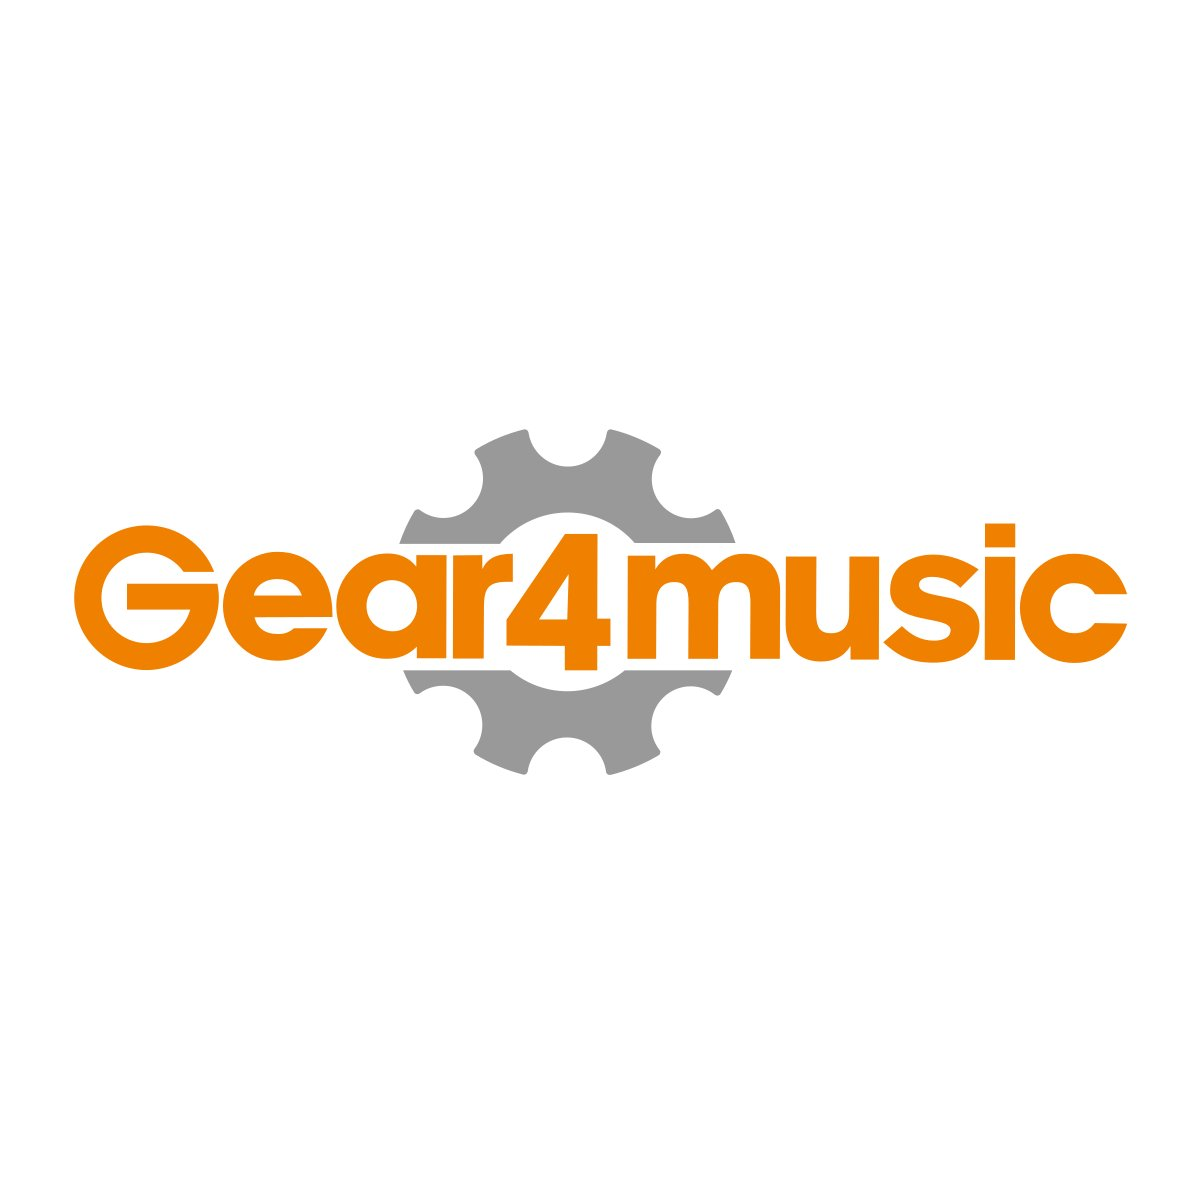 Flauto Traverso per Studenti con Custodia da Gear4music